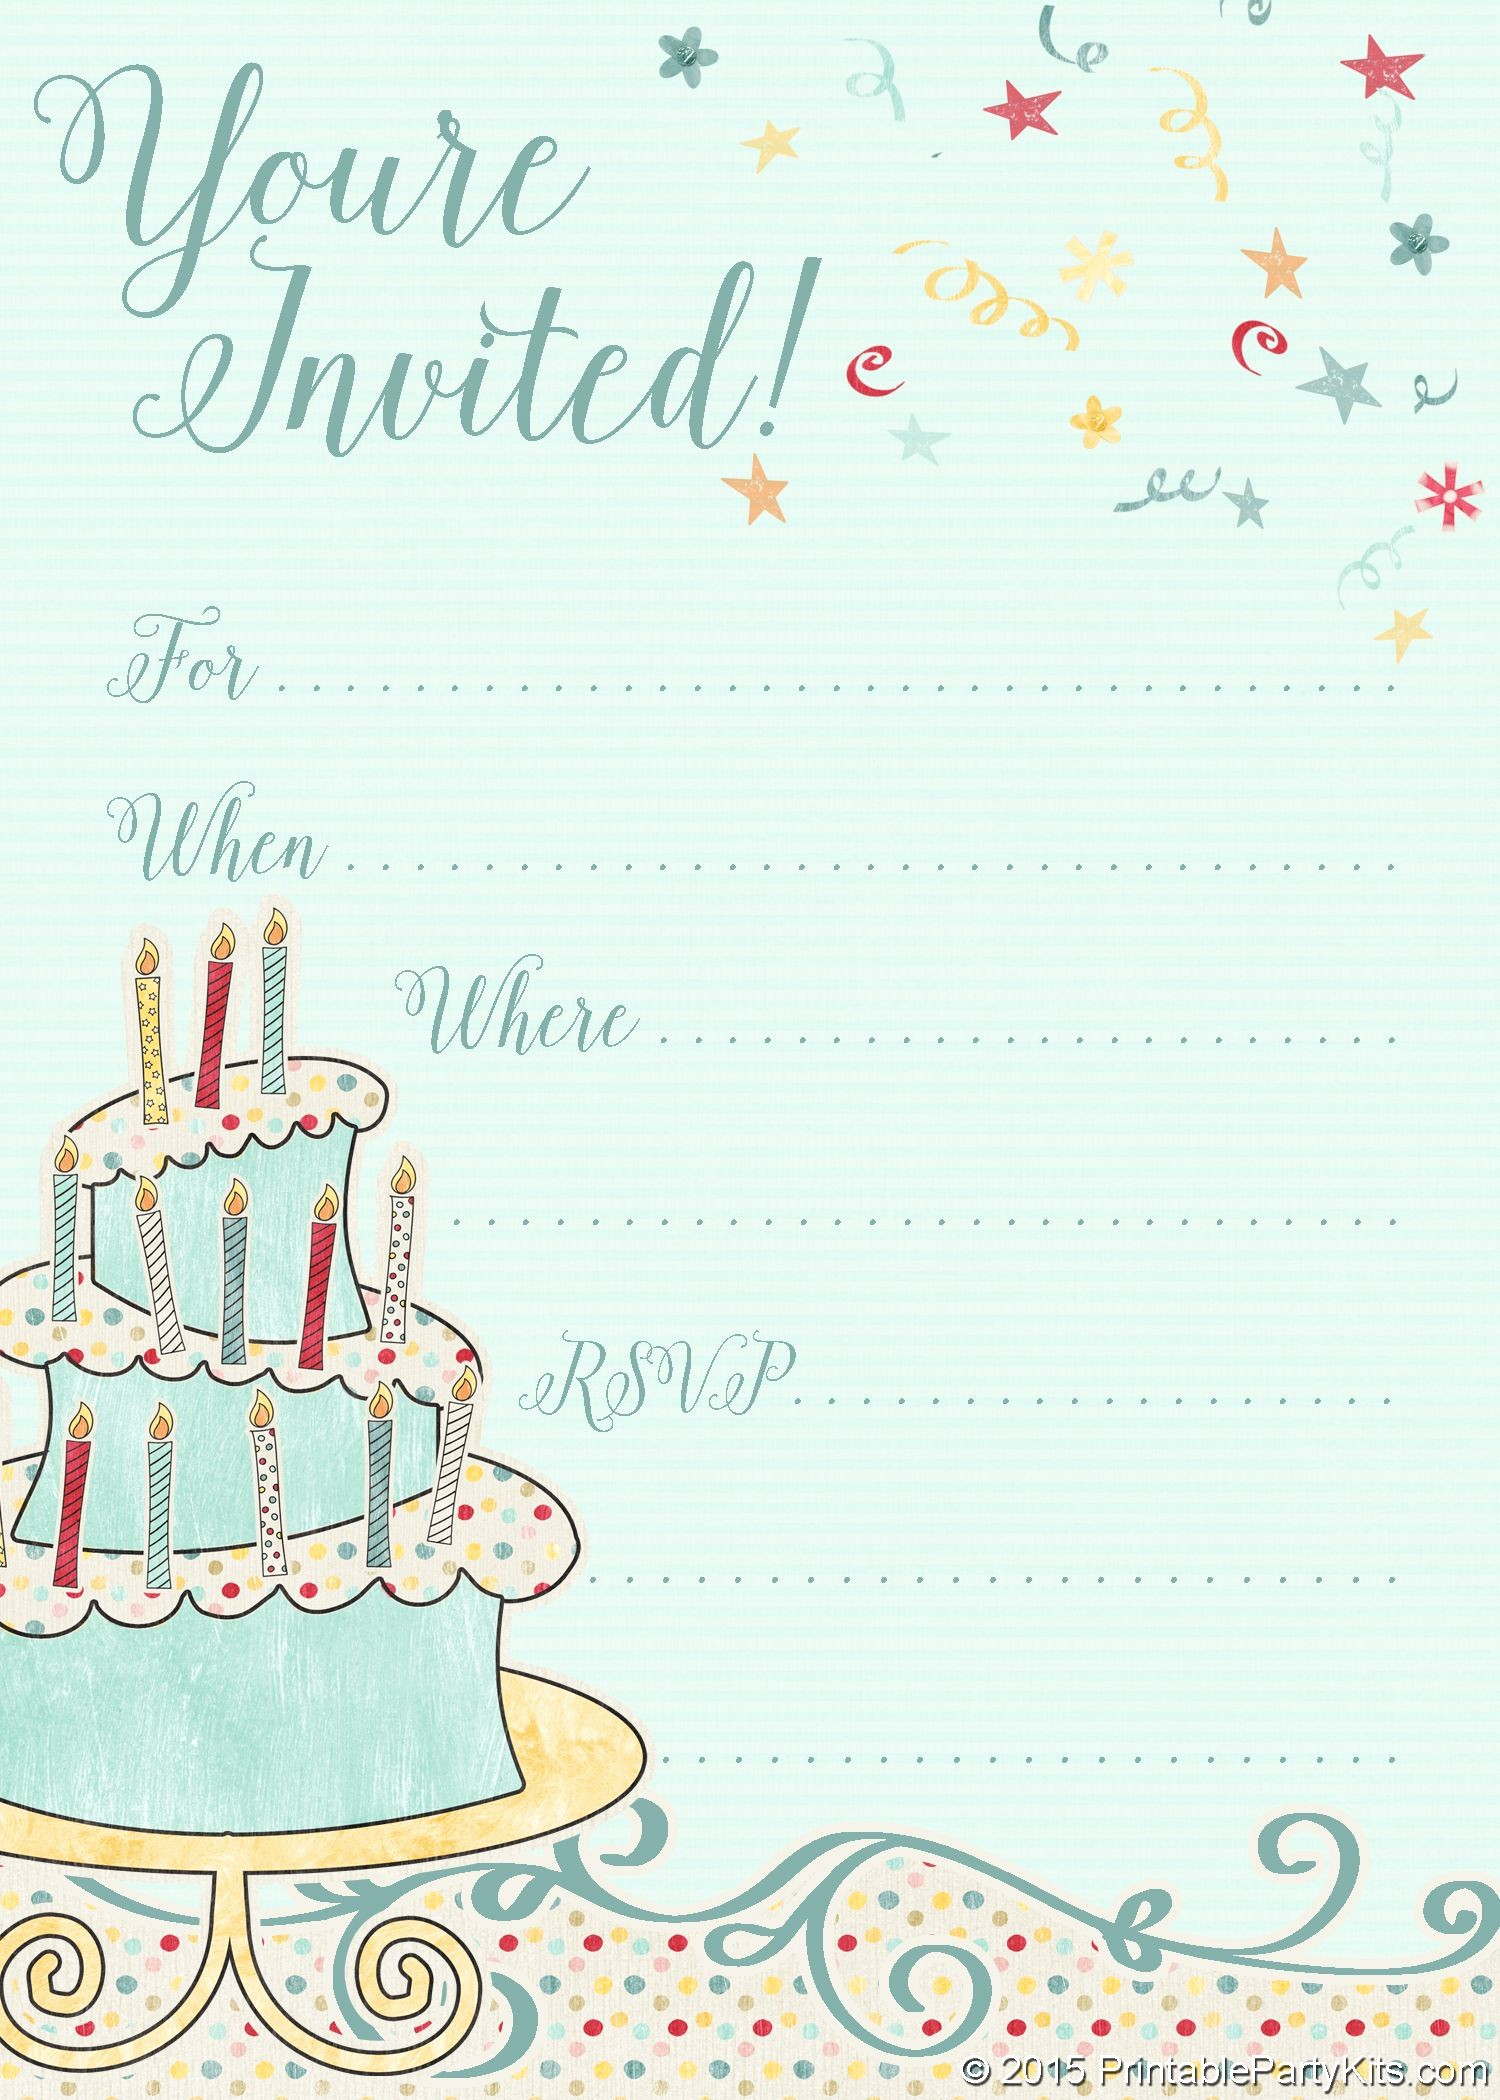 Invitation format for Birthday Party Lovely Free Printable Whimsical Birthday Party Invitation